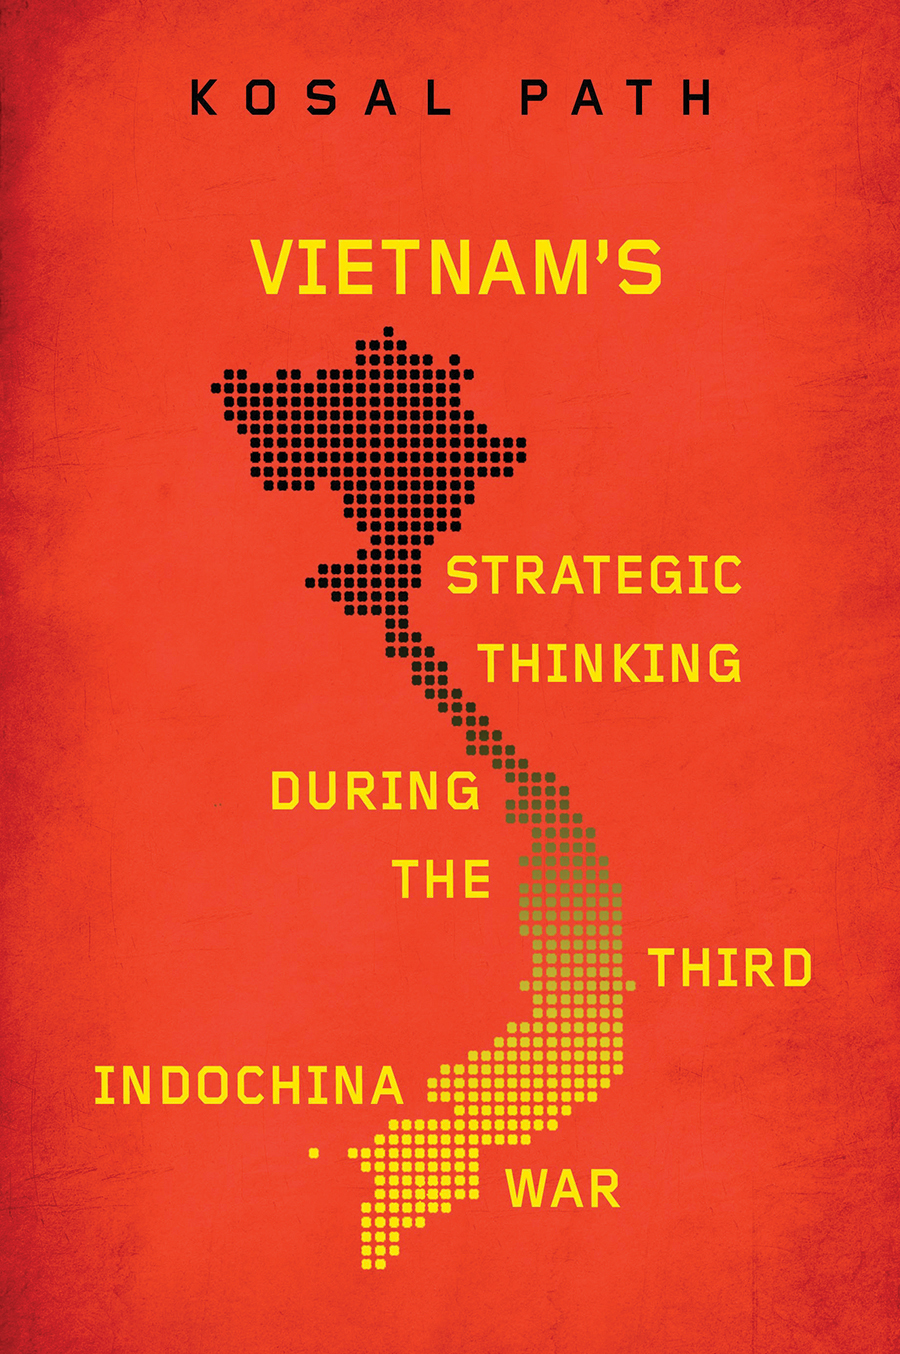 cover of Kosal Path	Vietnam's Strategic Thinking During the Third Indochina War. University of Wisconsin Press, 2020.	DS559.912 .P38 2020